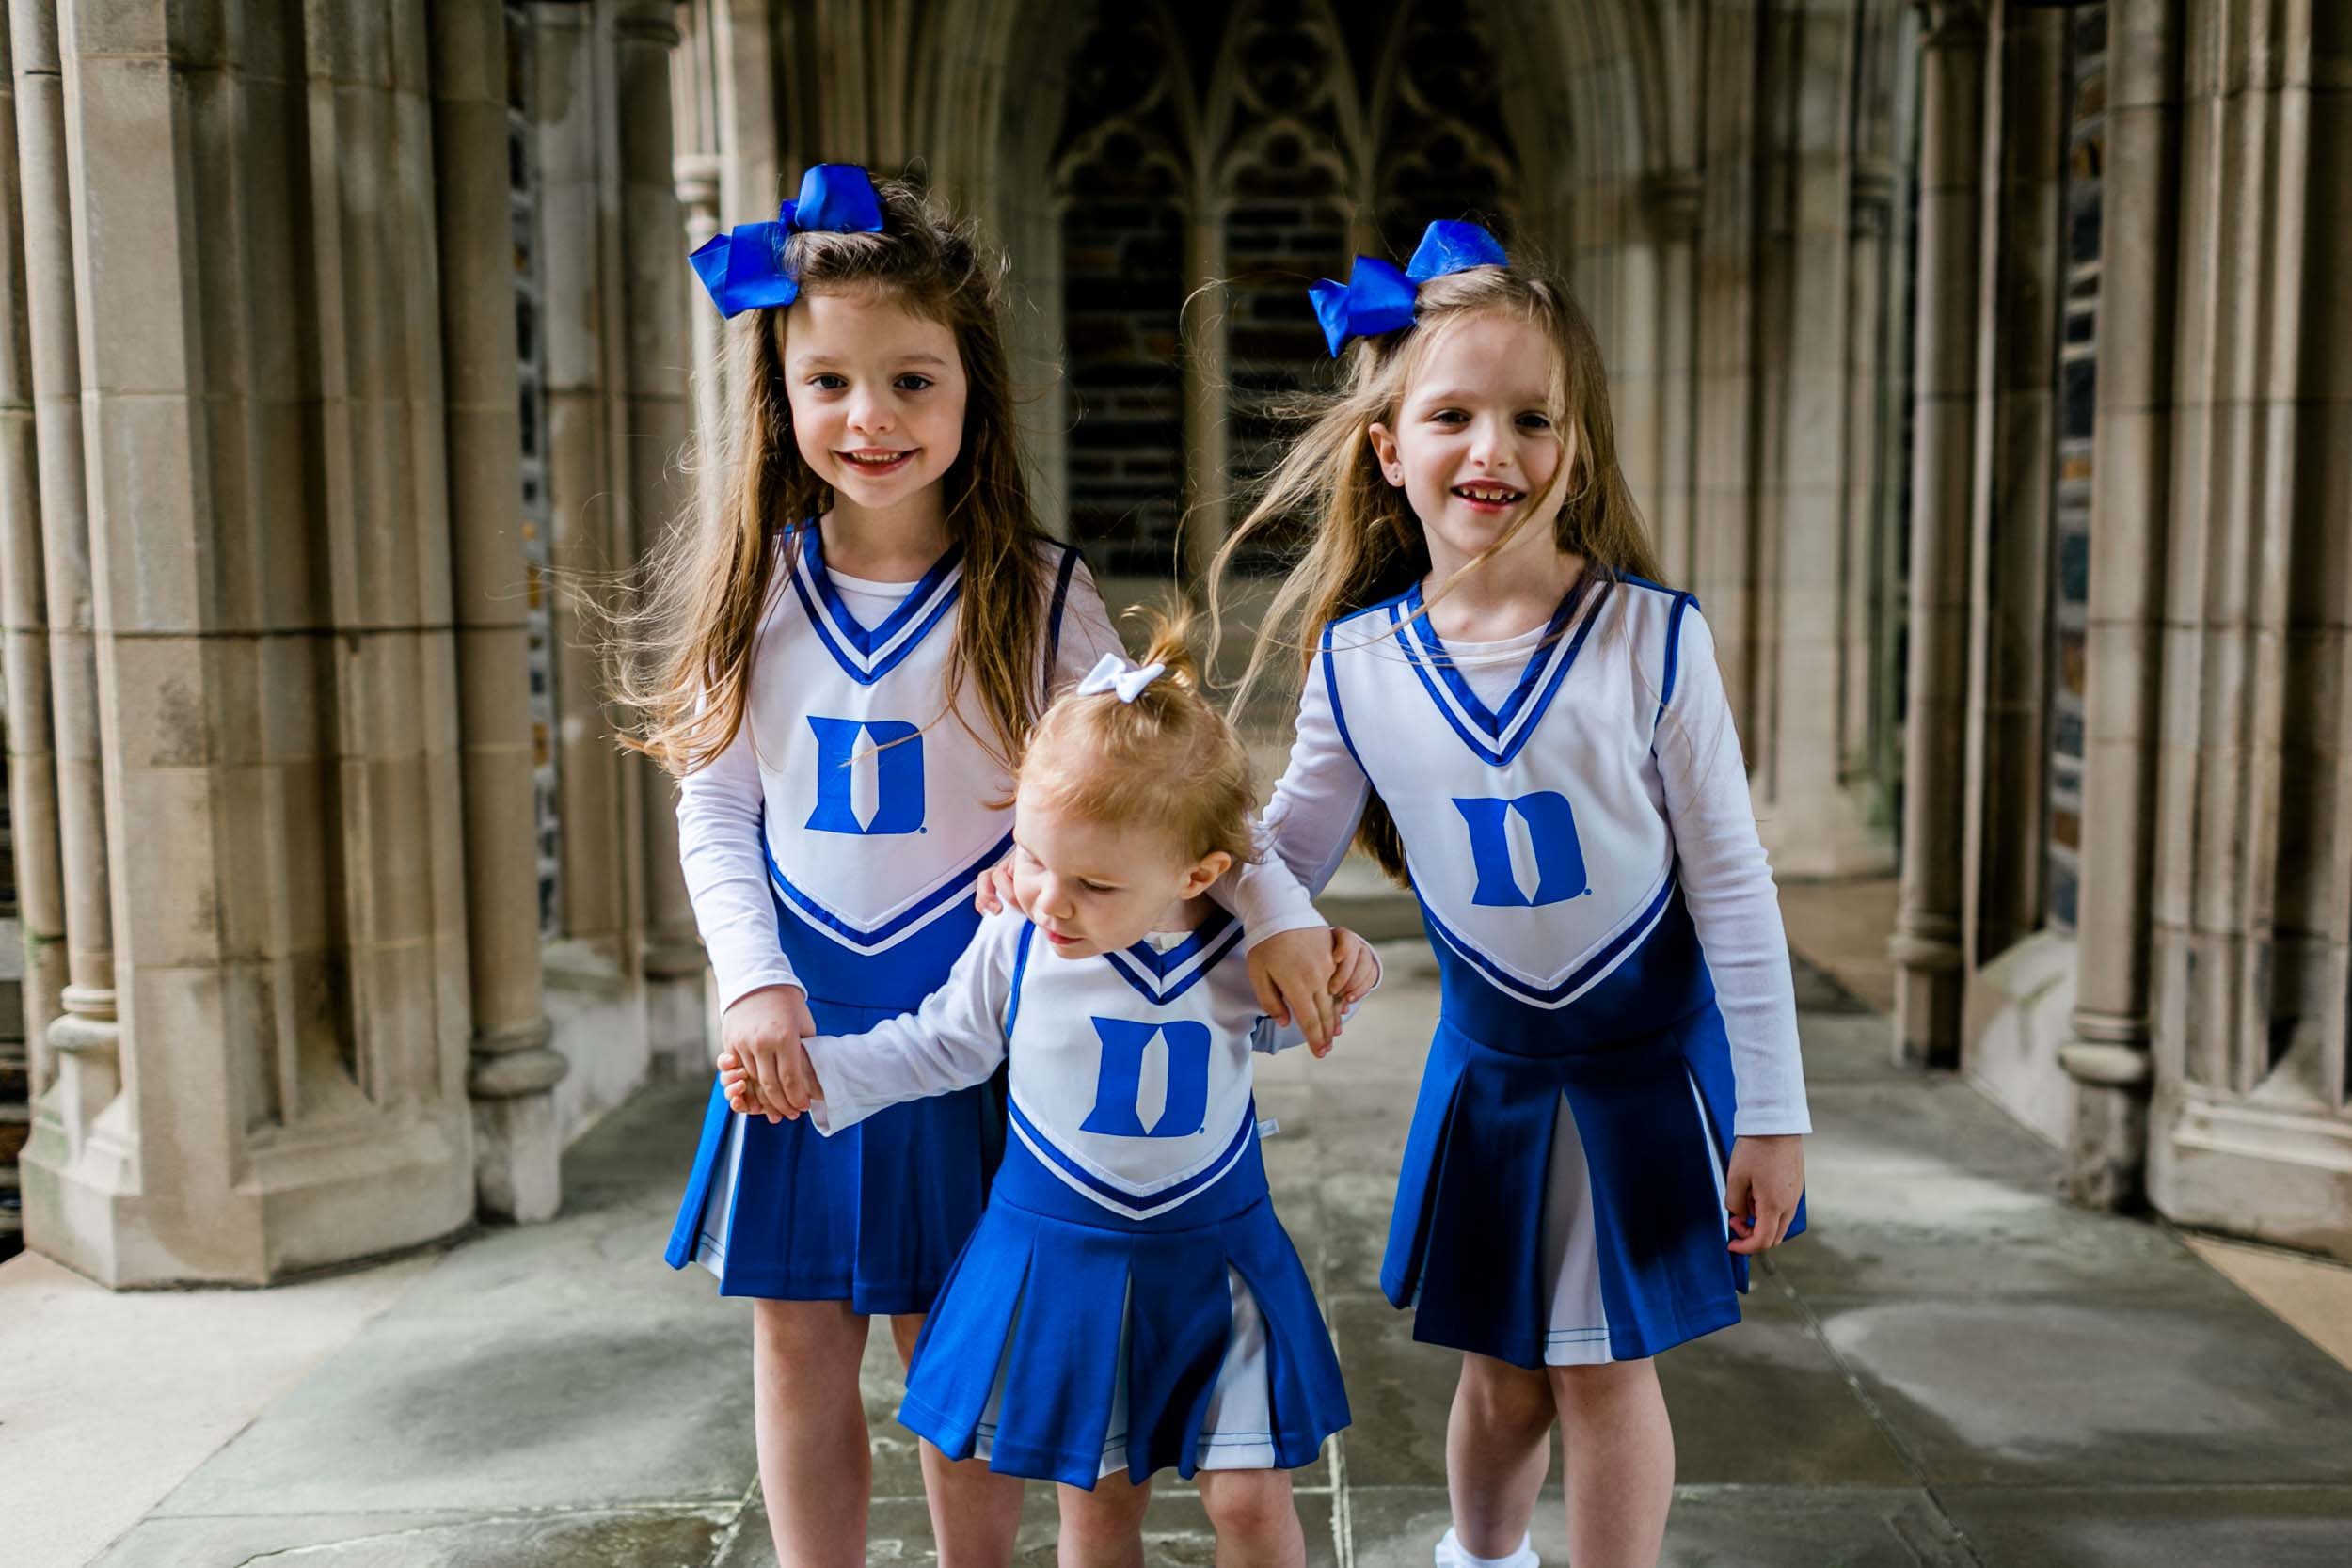 Candid photo of sisters wearing Duke Cheerleader outfits | Durham Family Photographer | By G. Lin Photography